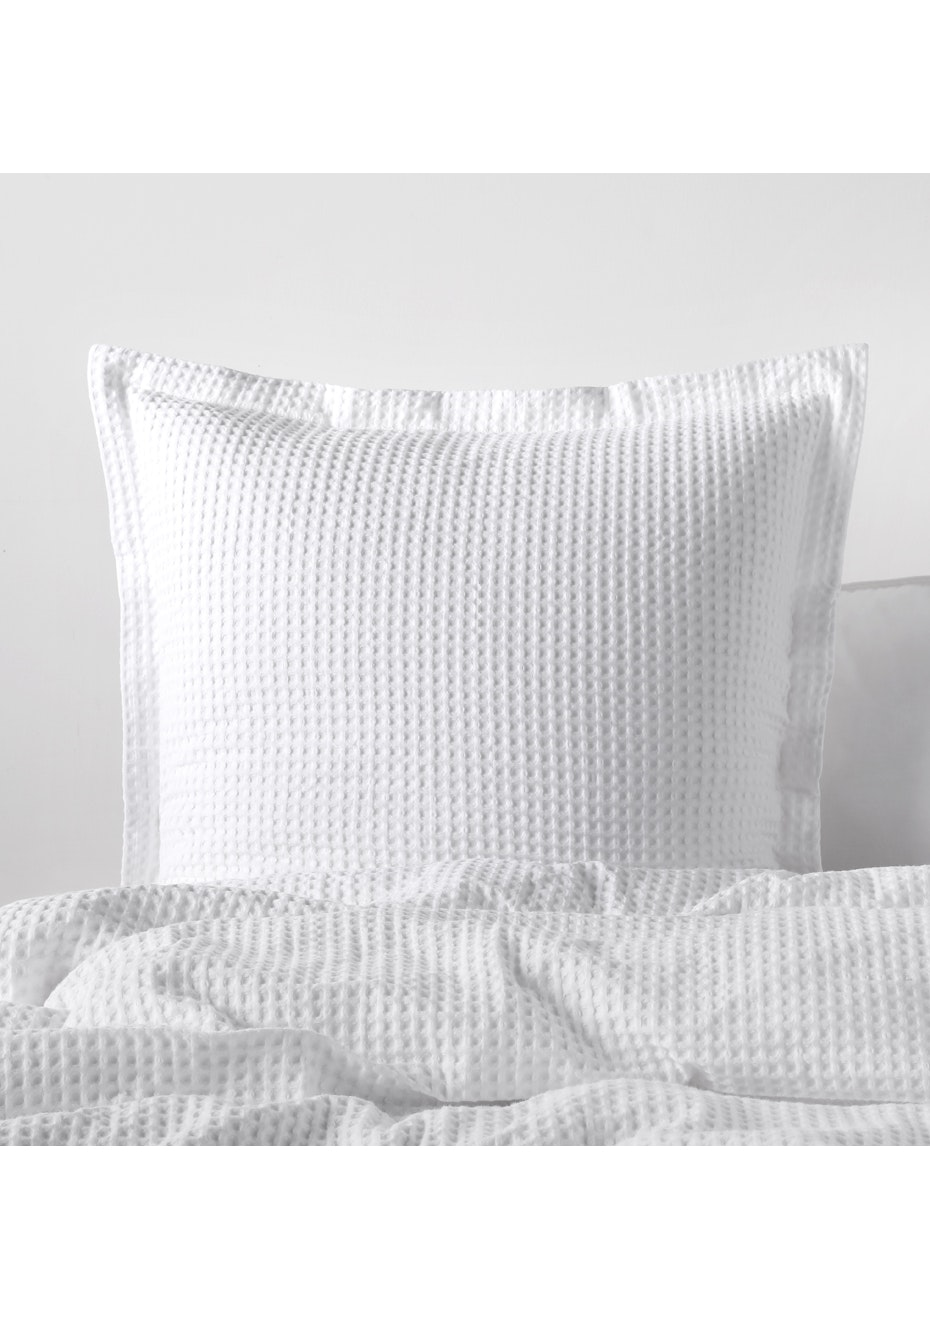 Grand Atelier White Hotel Waffle Euro Pillowcase